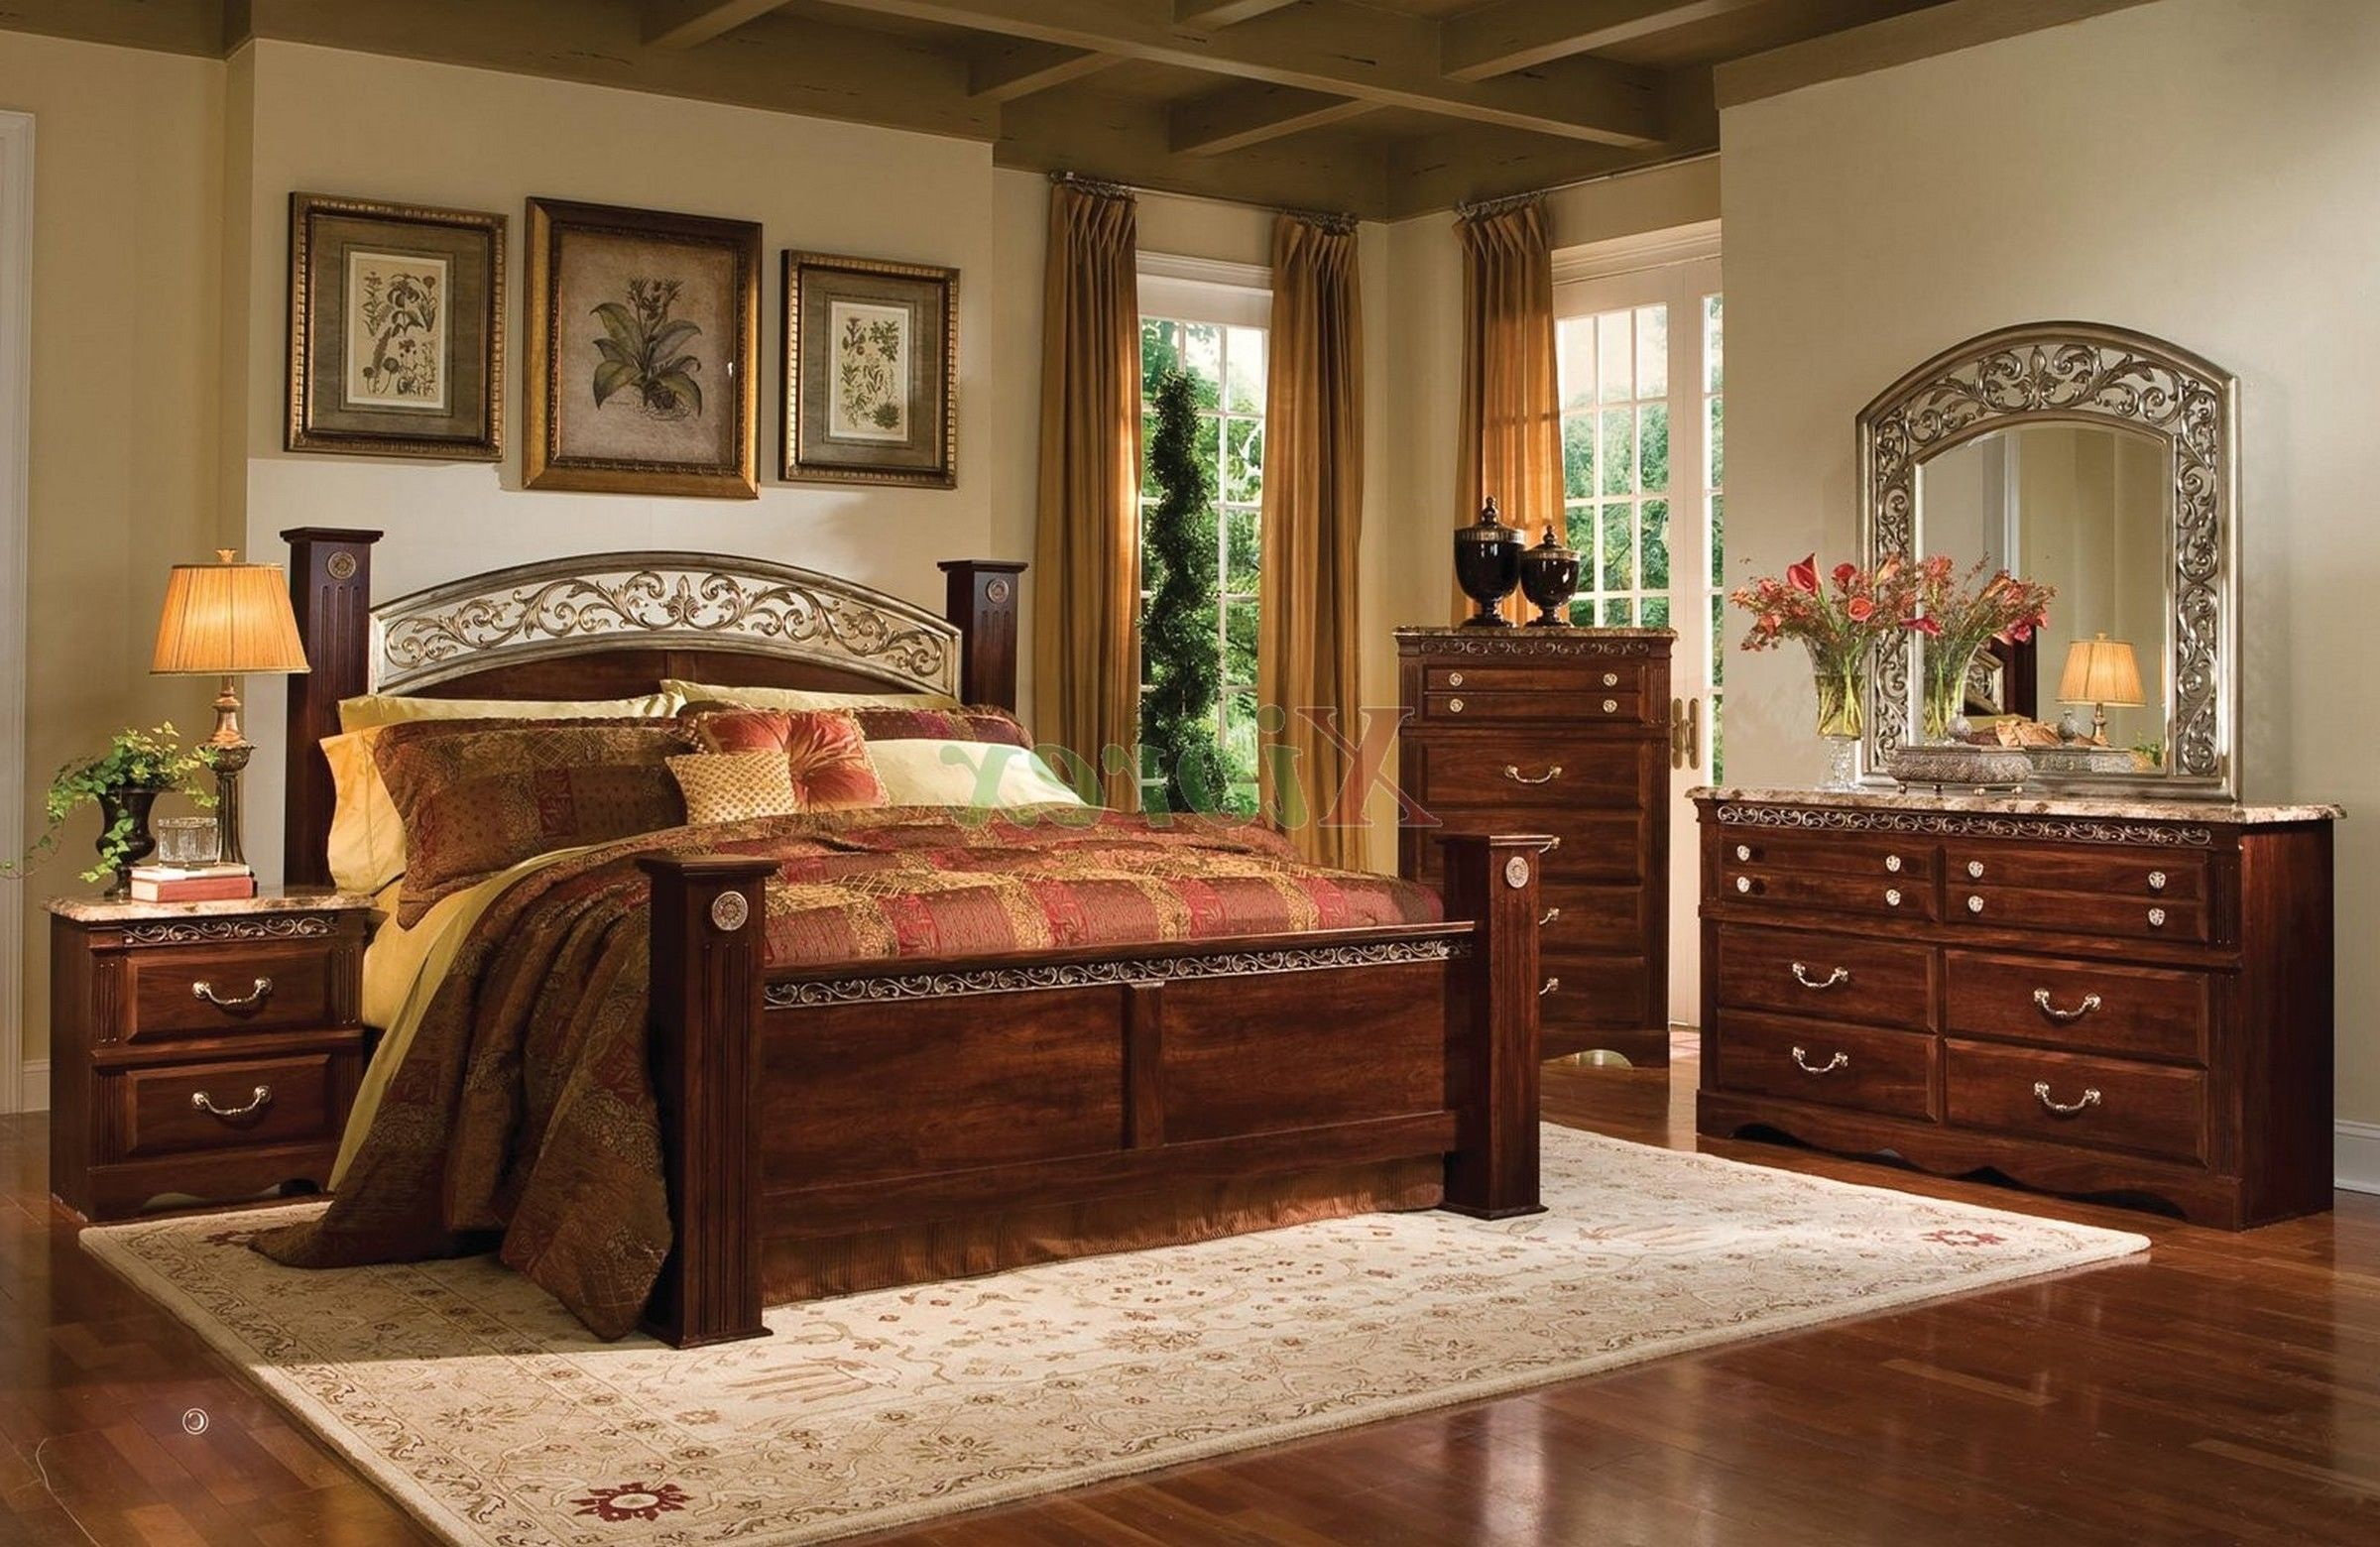 Wood Furniture Bedroom Design #picture1